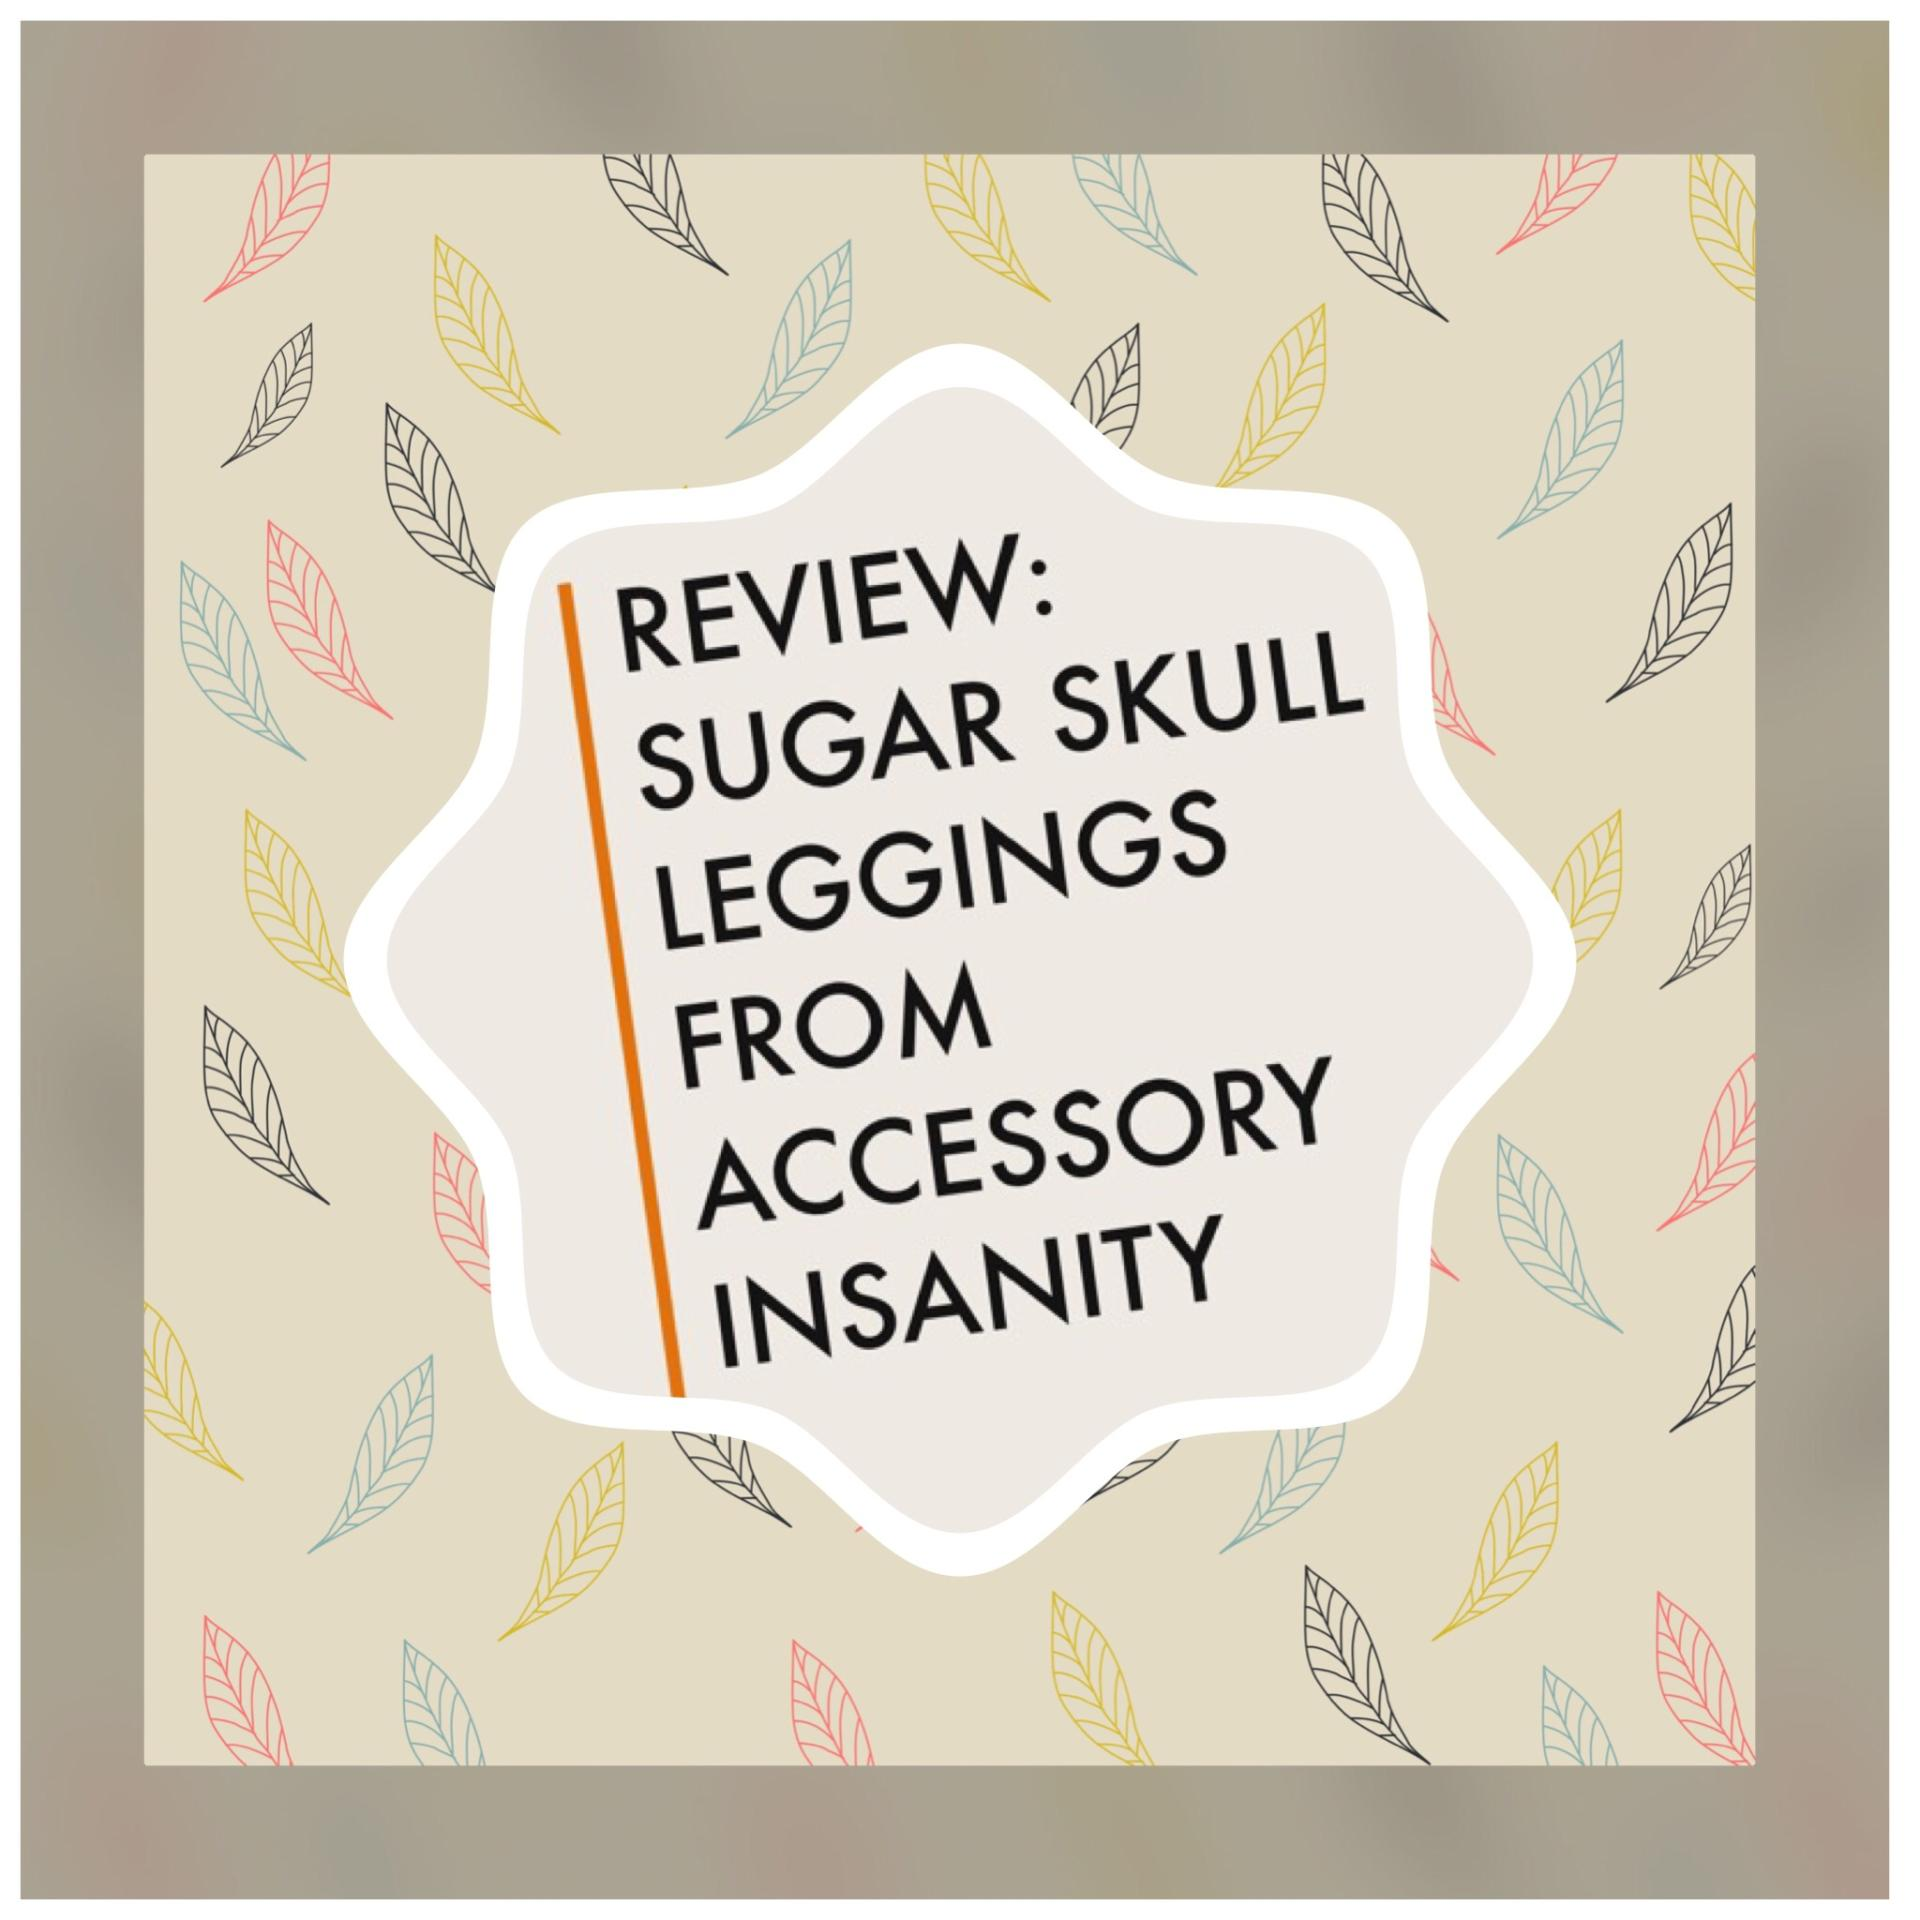 Review: Sugar Skull Leggings from Accessory Insanity